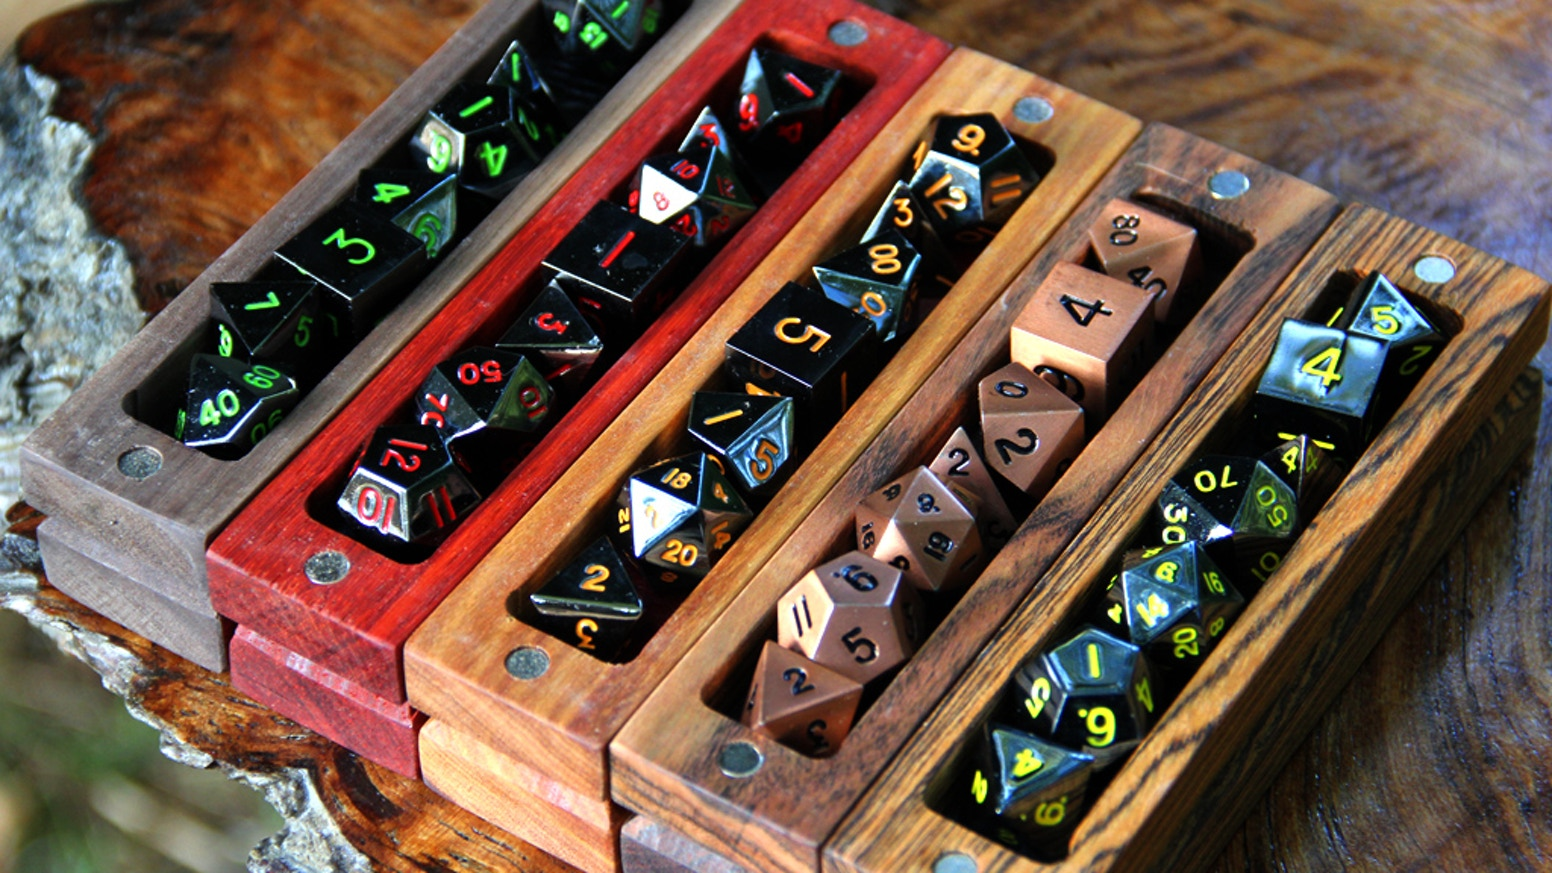 Awesome wooden Hero Sleeves for your dice and, introducing, the new Bone Box - the new all in one dice carrying and storage solution!